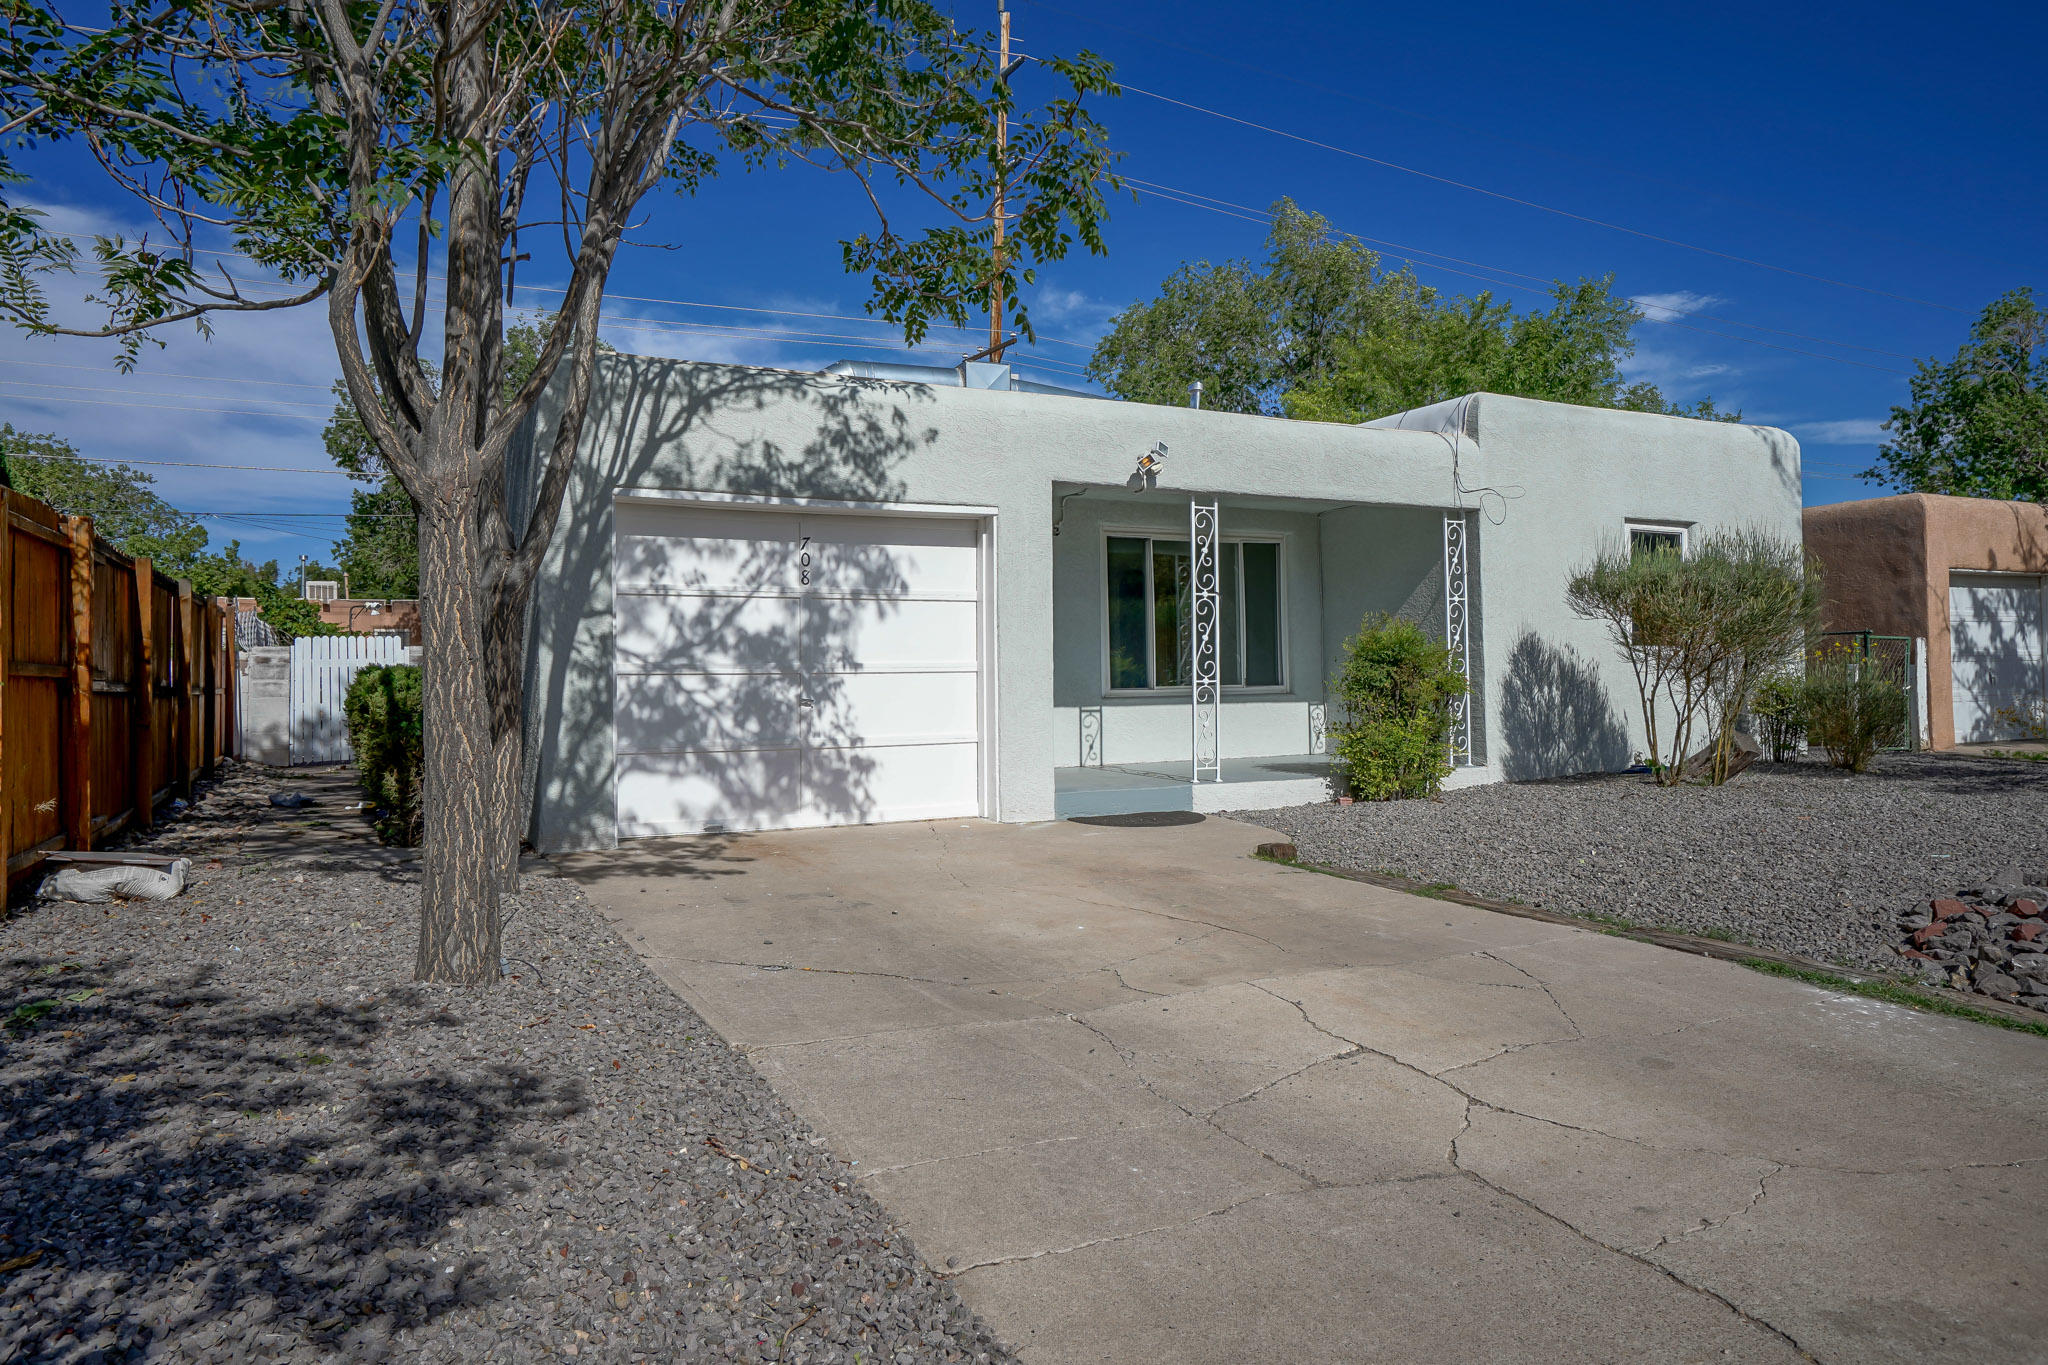 Very-nicely-remodeled, charming Adobe-Style Casa in great NE Heights- ''Fair West'' neighborhood! Ideally situated between UNM & Uptown-shopping centers, Nob Hill! Kirkland & I-40 very close by!Renovations include: Refurbished cabinets in kitchen, new stainless-steel appliances; new raised-panel interior doors w/new Santa Fe-style black hardware; new granite countertops, sink & faucet; new custom tile flooring in kitchen & 3rd BR (office/study); stunning refinished, original hardwood floors thruout rest of home; new toilet & BA vanity; new custom, surround tile in BA; new light fixtures; new paintwork thruout; refurbished windows. New front & back SW landscaping. New TPO roof w/transferable warranty. New/Less than 1-yr heating units. Skylight;Cove Ceilings;FP. Light & wonderfully bright!